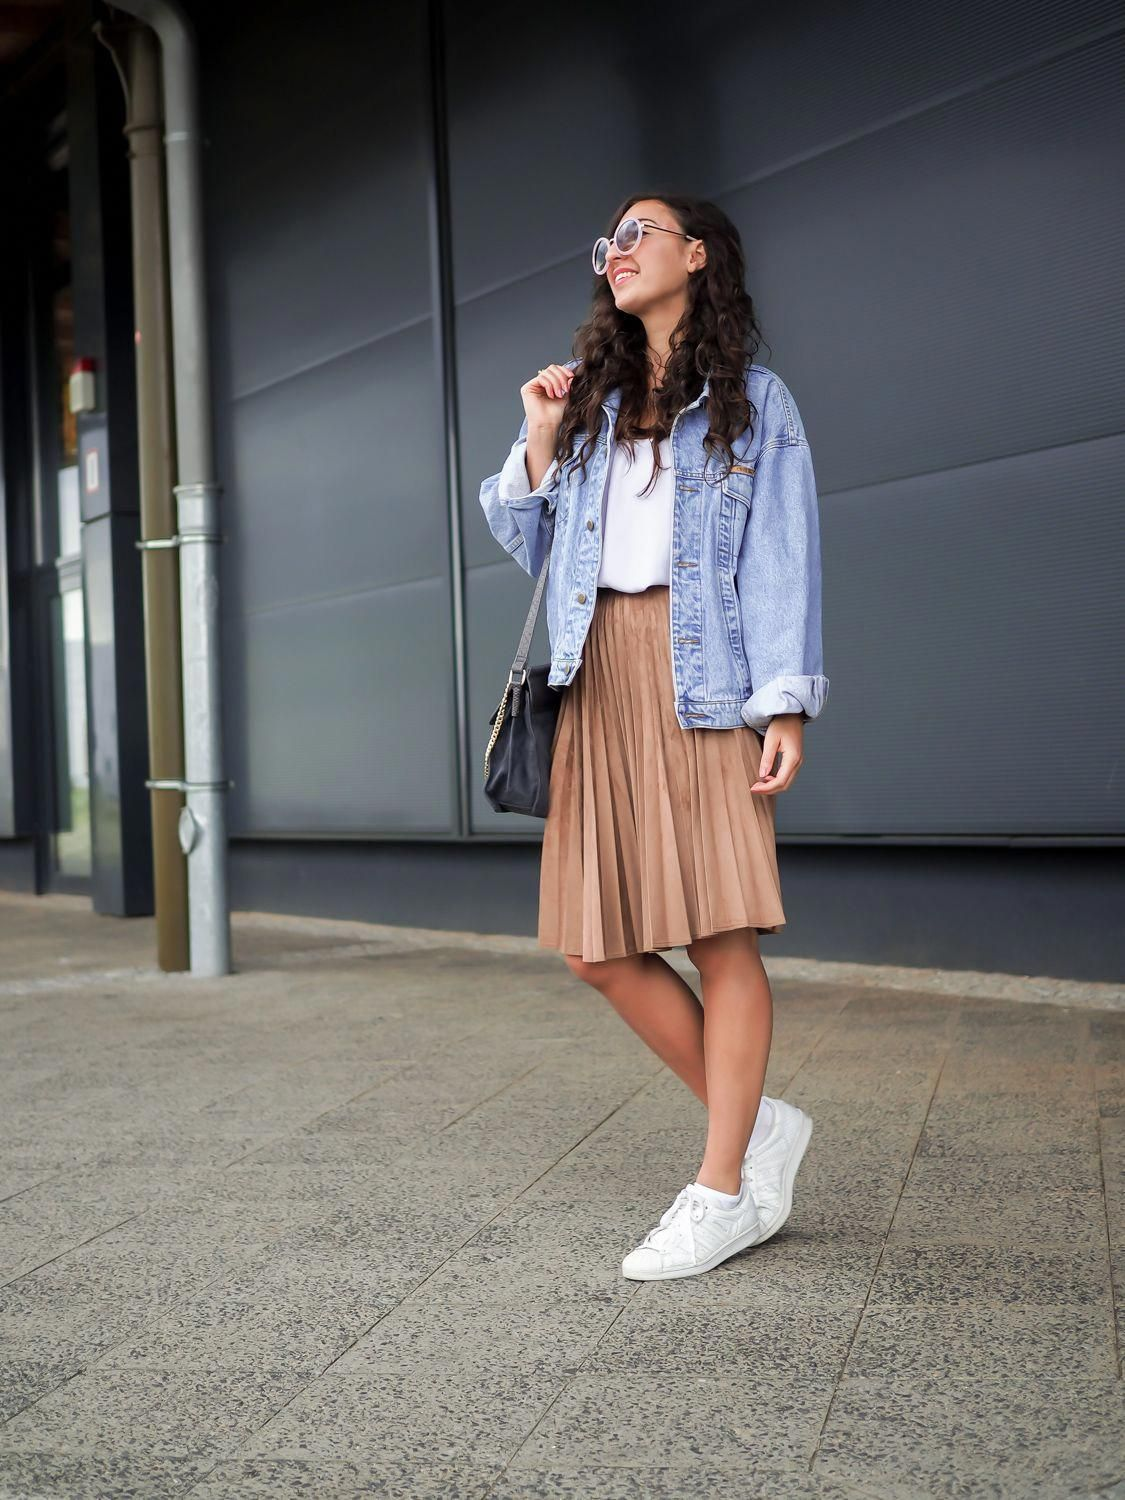 df7c04a0bc Oversize Denim Jacket and Pleated Skirt how to wear retro boyfriend  jeansjacke plissee rock midi länge